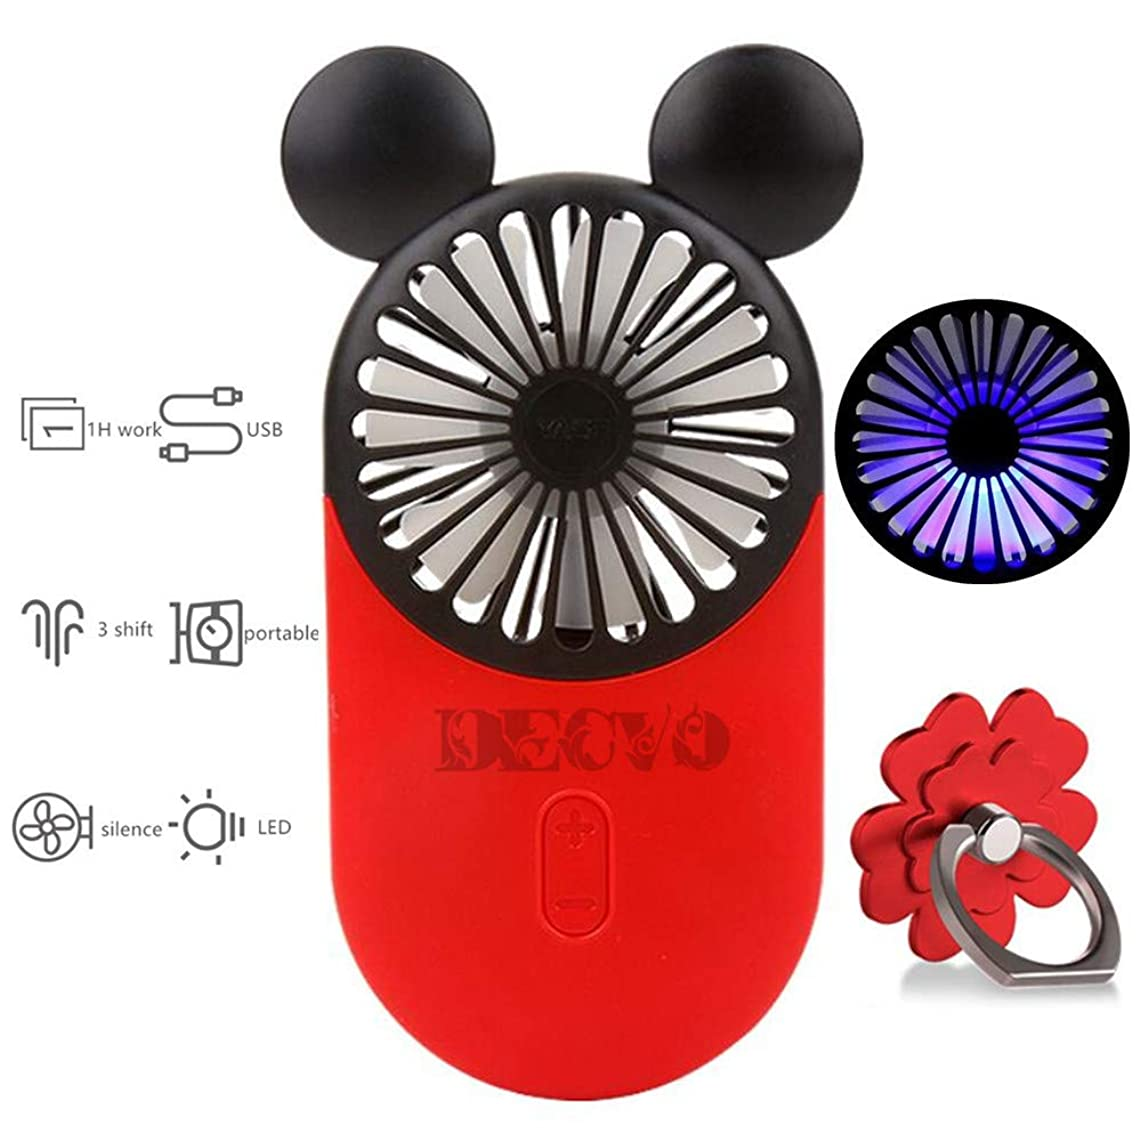 DECVO Cute Personal Mini Fan, Handheld & Portable USB Rechargeable Fan with Beautiful LED Light, 3 Adjustable Speeds, Portable Holder, Perfect for Indoor Or Outdoor Activities, Cute Mouse (Red)